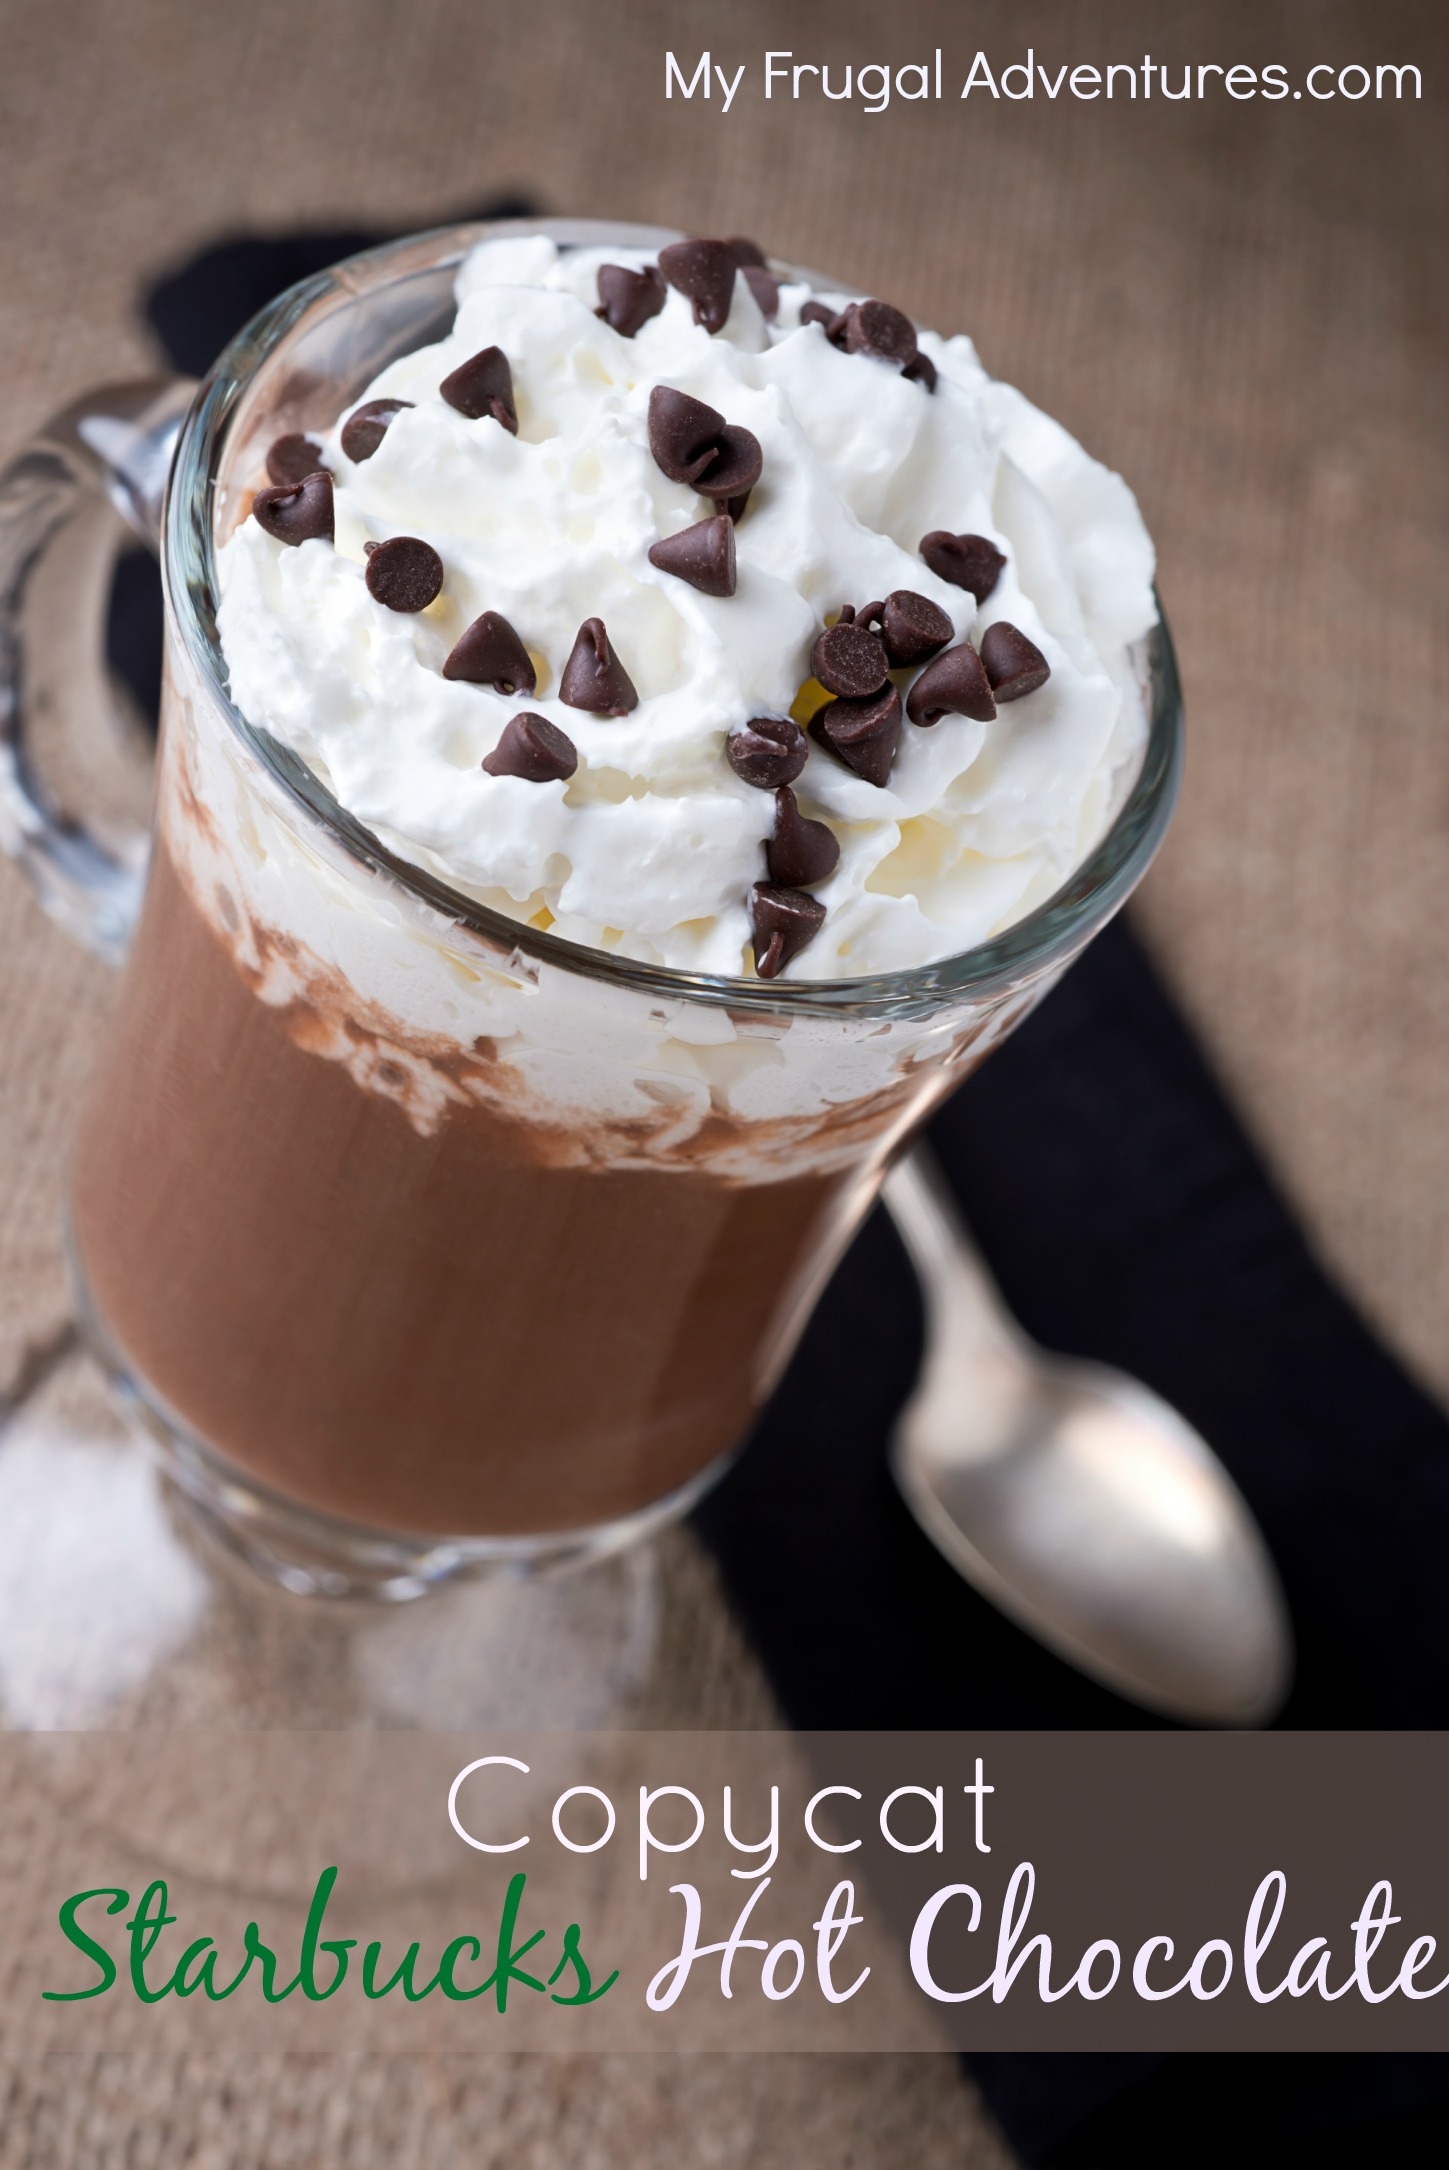 Copycat Starbucks Hot Chocolate Recipe (Quick & Easy!) - My Frugal ...